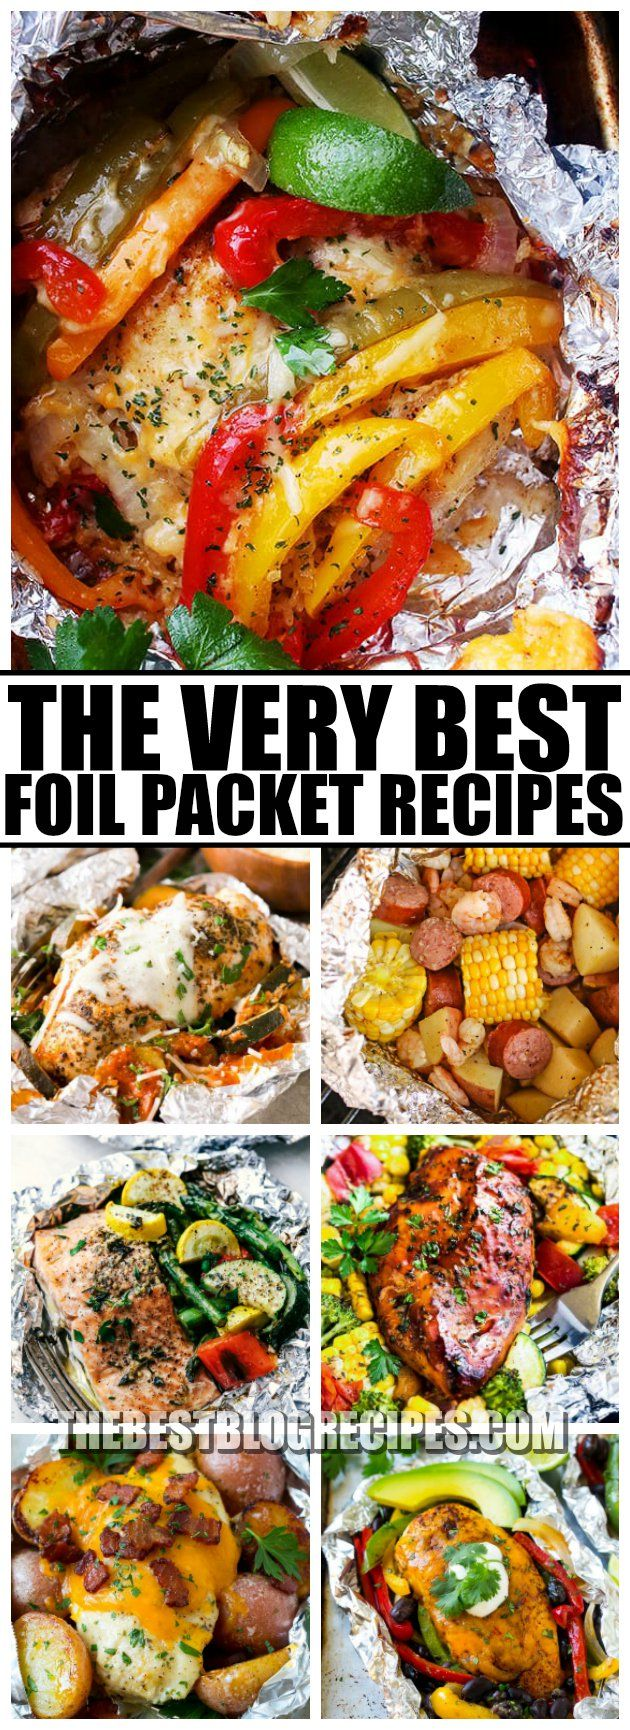 The Best Foil Packet Recipes are perfect for when you need an easy but delicious no hassle dinner! These recipes will absolutely be new family favorites! via @bestblogrecipes